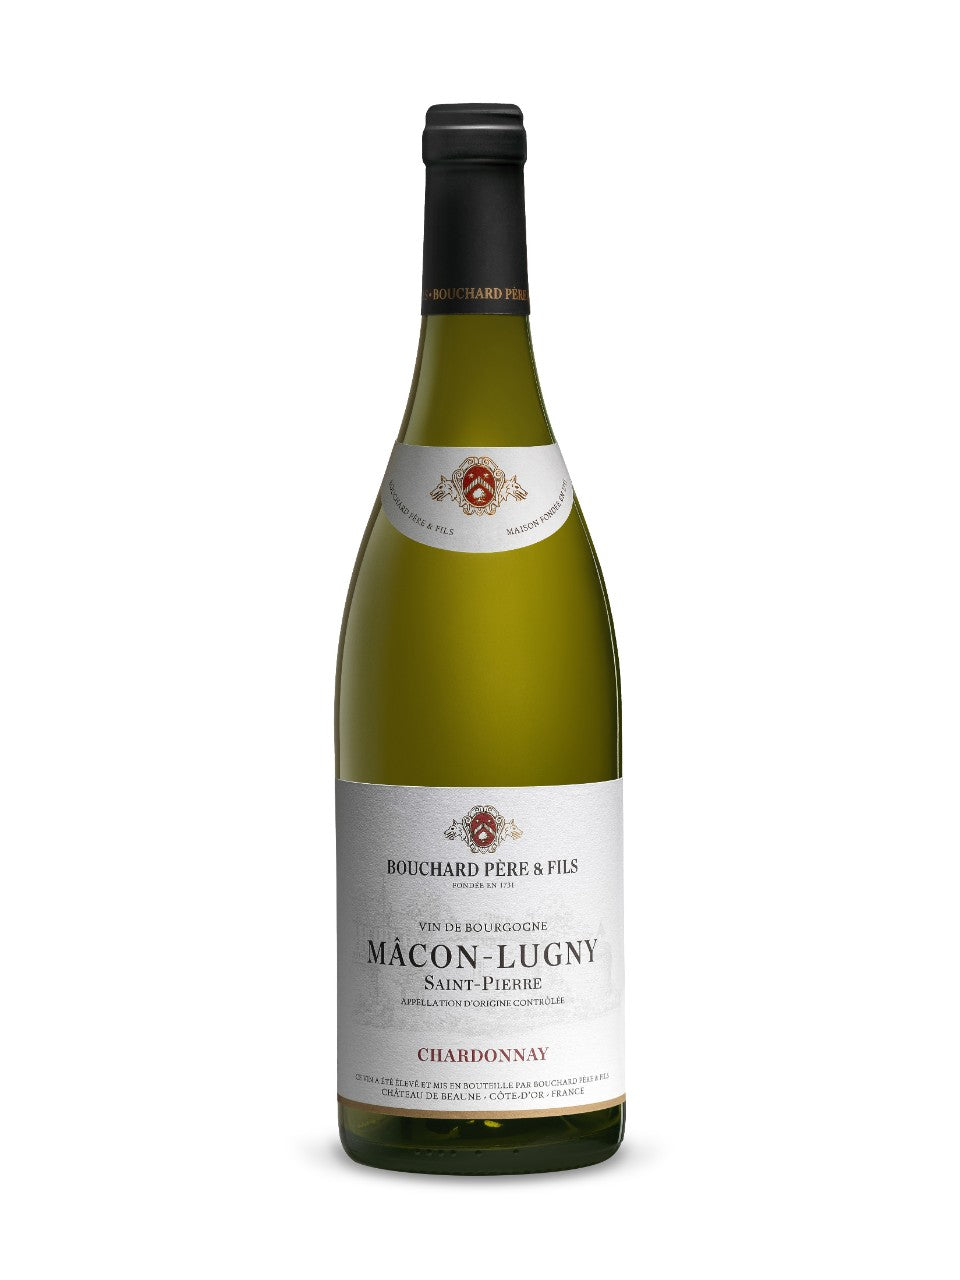 Wine of the Week - Bouchard Père & Fils Mâcon Lugny Saint Pierre 2015, France